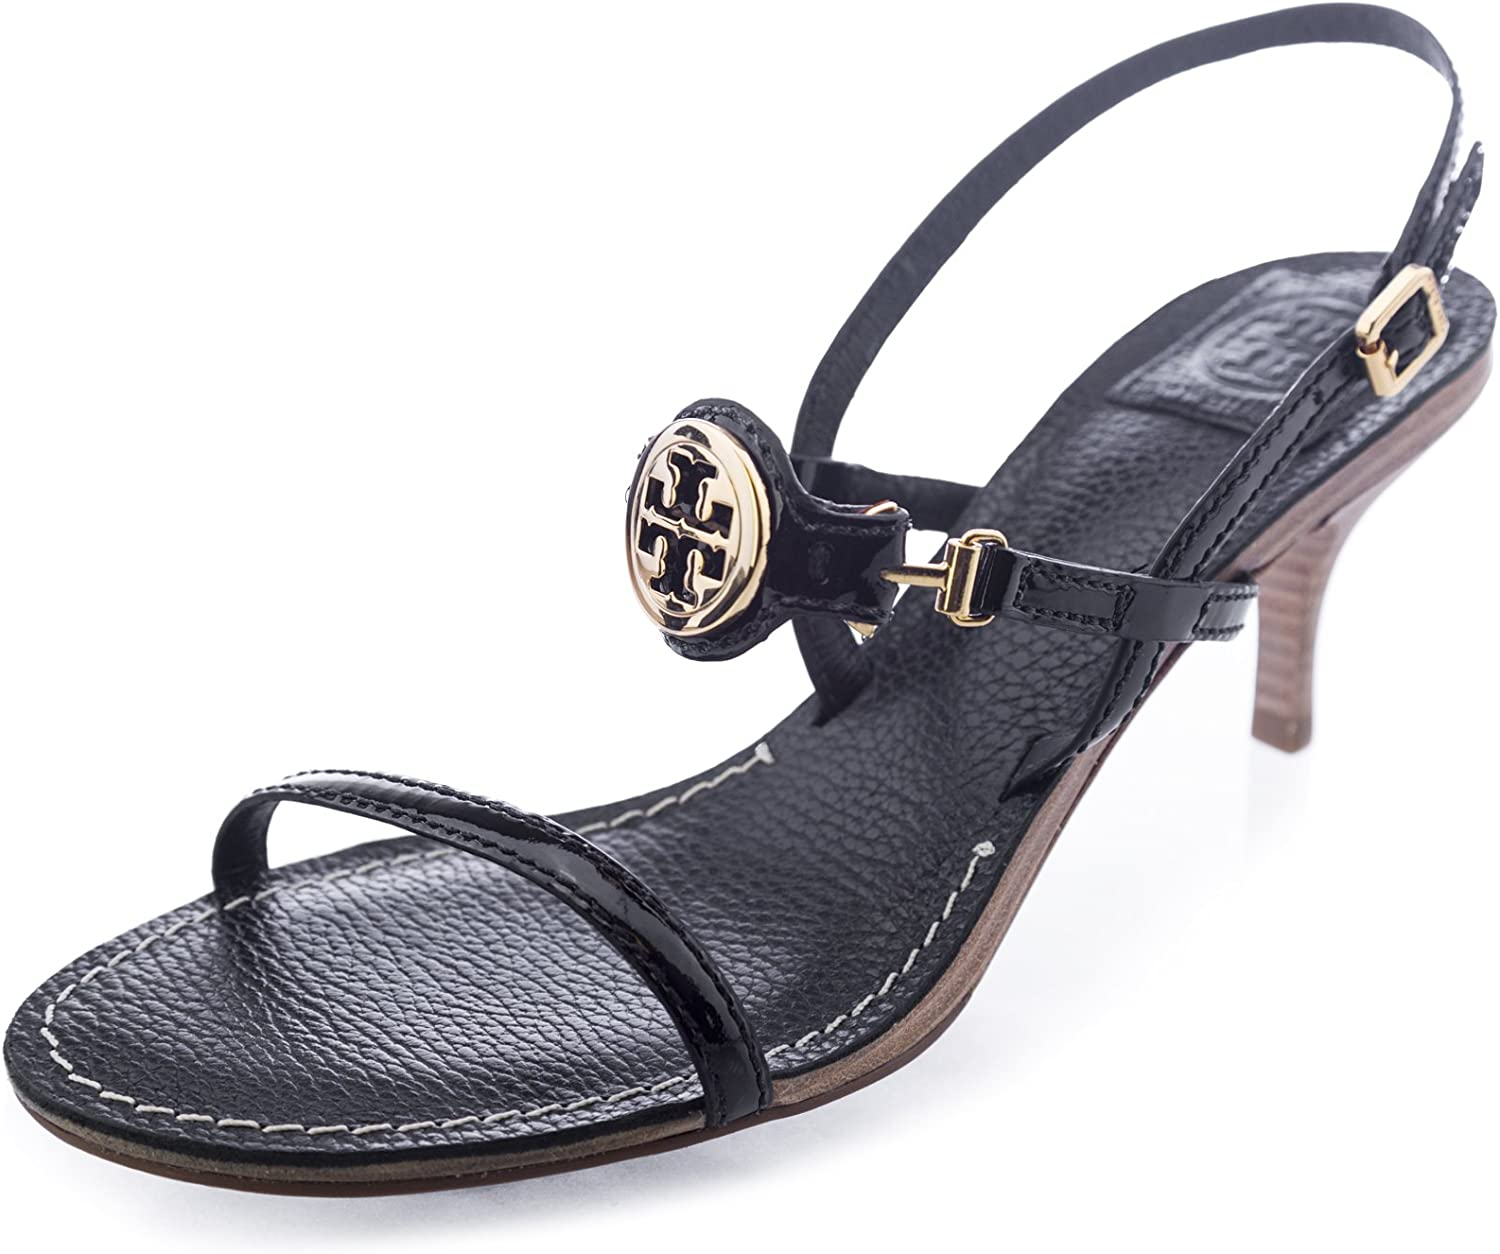 Tory Burch Mira Patent Sandals 9 Black